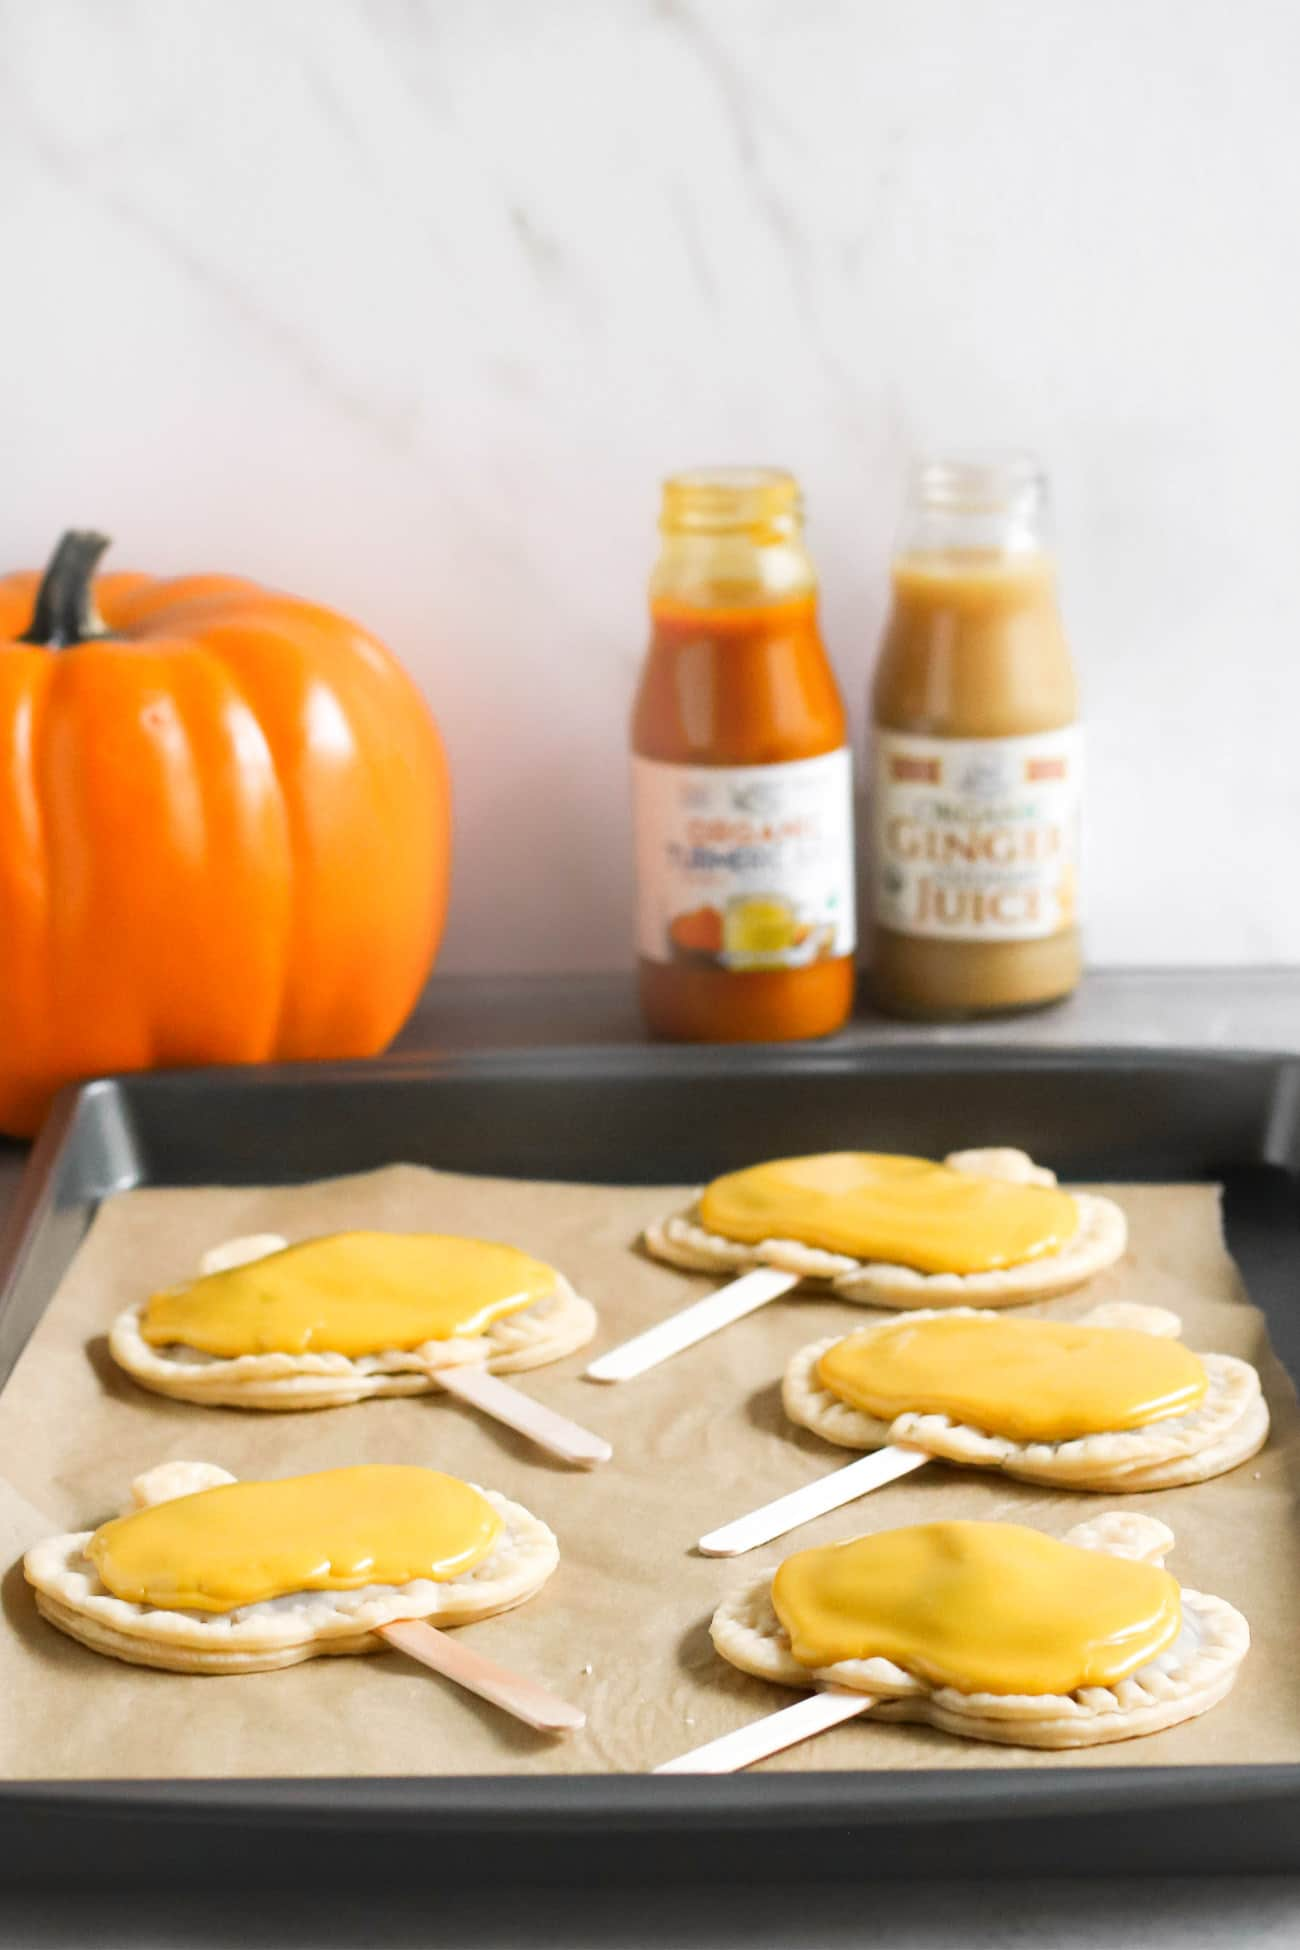 Pumpkin Pie Pops -- where Pumpkin Pie meets limited edition Pumpkin Pie Pop Tarts meets secretly good-for-you deliciousness! They're rich and sweet to satisfy your sweet tooth, and they're secretly vegan, dairy free, and low sugar too! What can be better than homemade pumpkin pie filling all wrapped up in a flavorful pie crust? Everything about these screams Fall, Halloween, cool weather, fuzzy sweaters, and good feels. These are a guaranteed crowdpleaser, and definitely a dessert to impress!